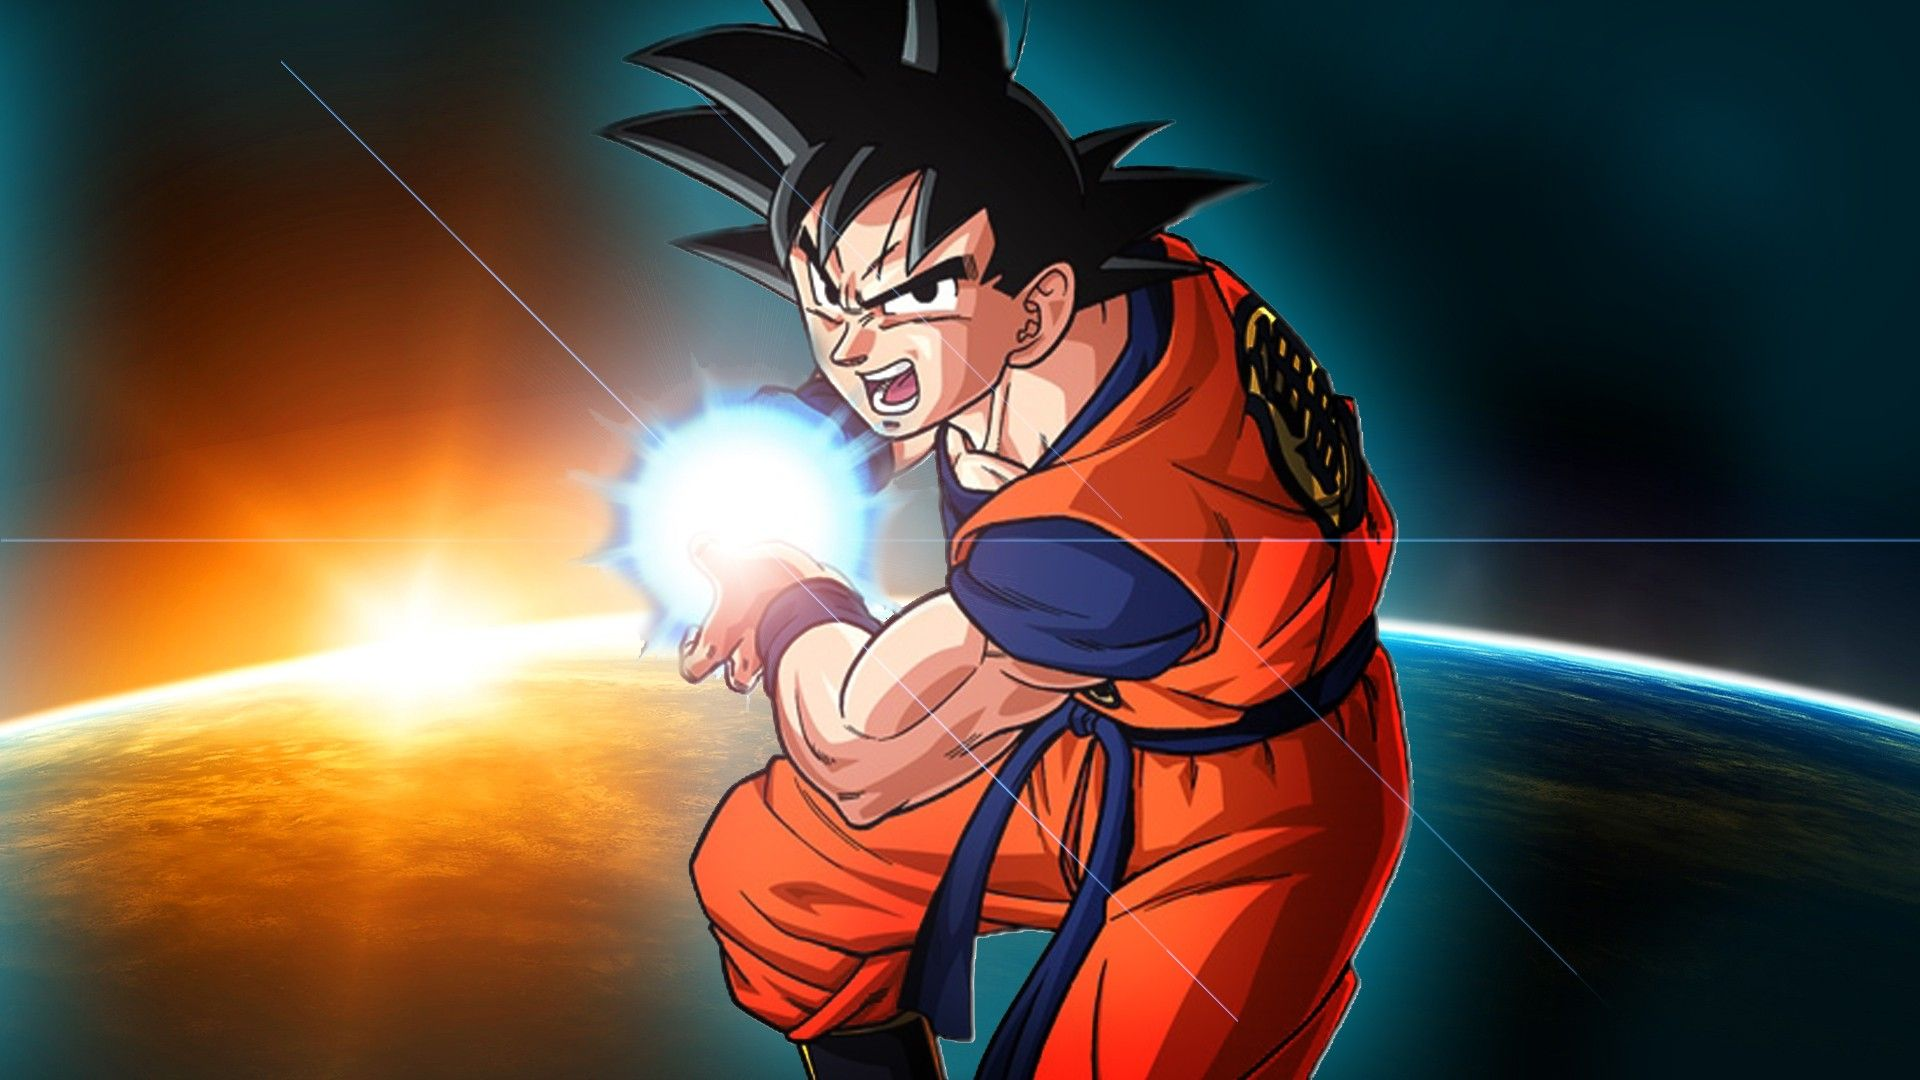 Dbz Wallpaper Hd Goku 1024 768 Dragon Ball Z 3d Wallpapers 39